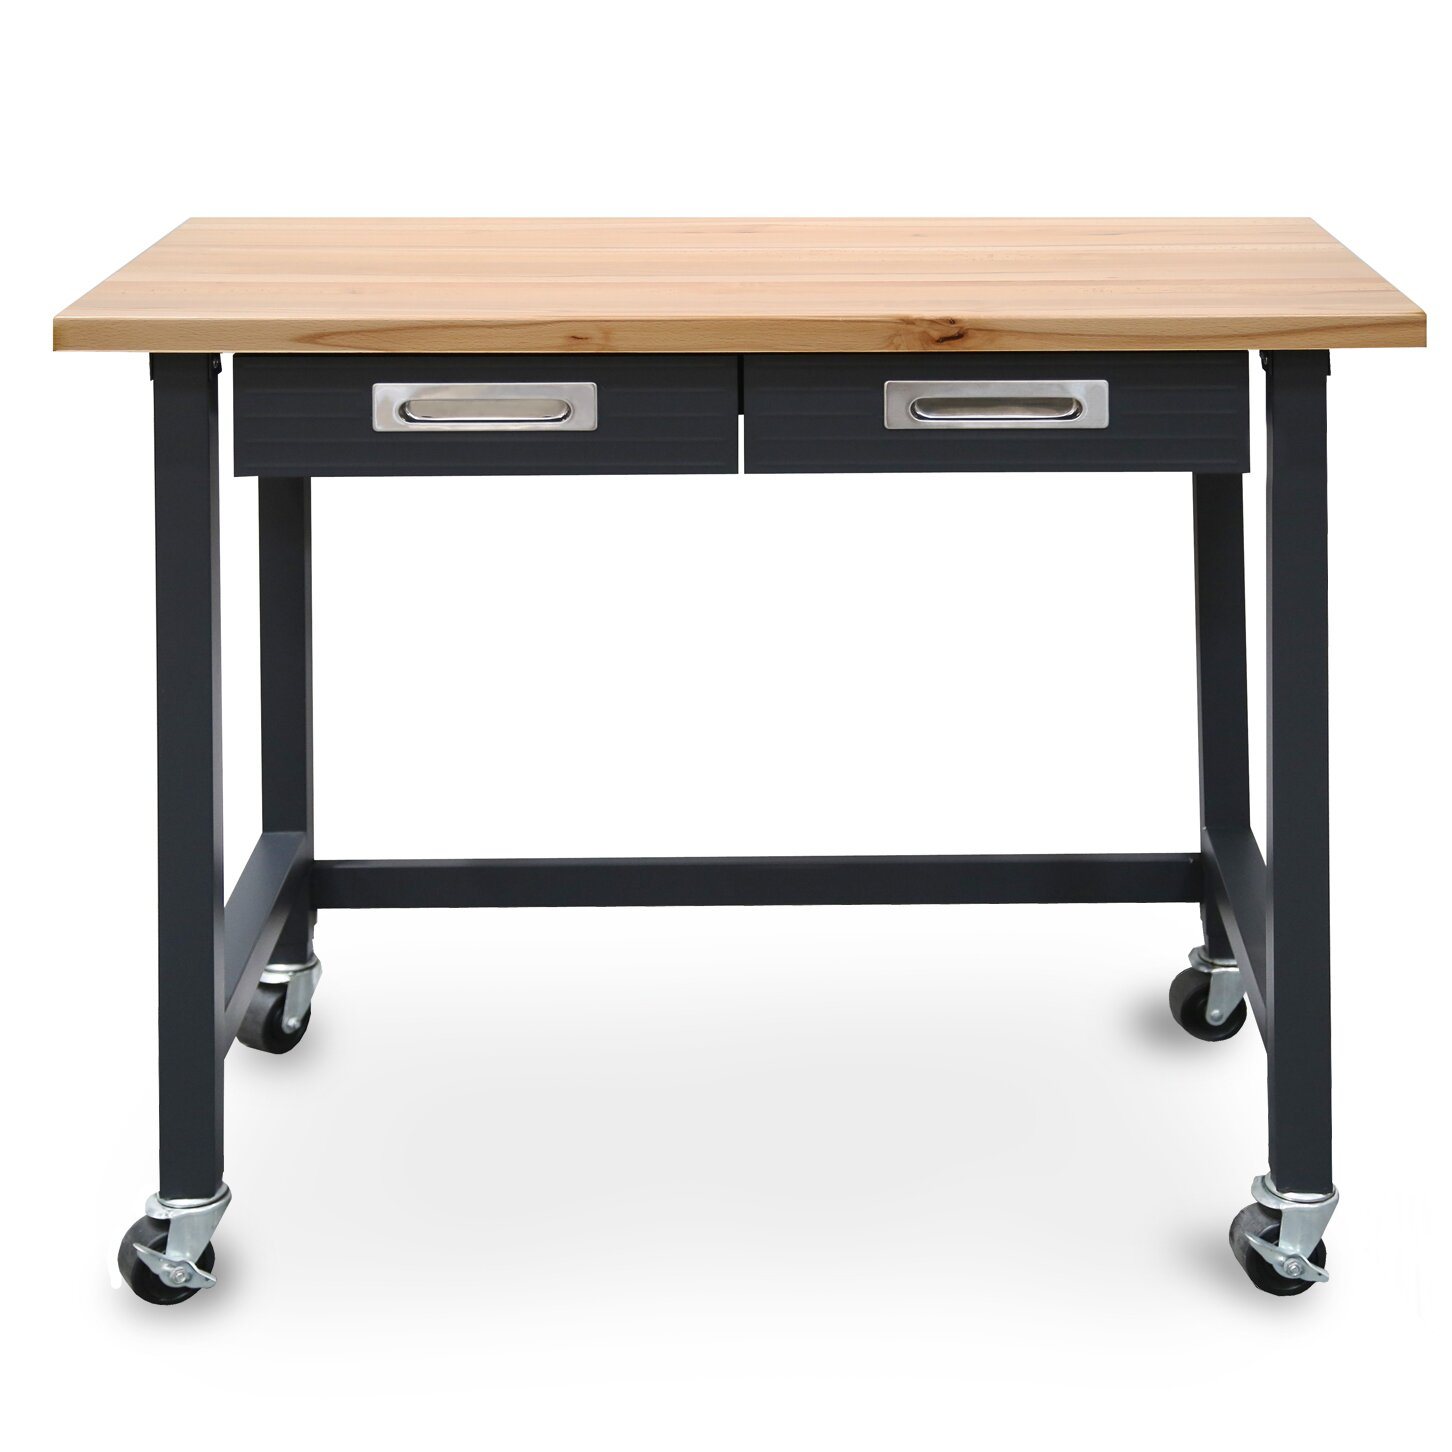 Symple Stuff Commercial Heavy-Duty Wood Top Workbench & Reviews | Wayfair